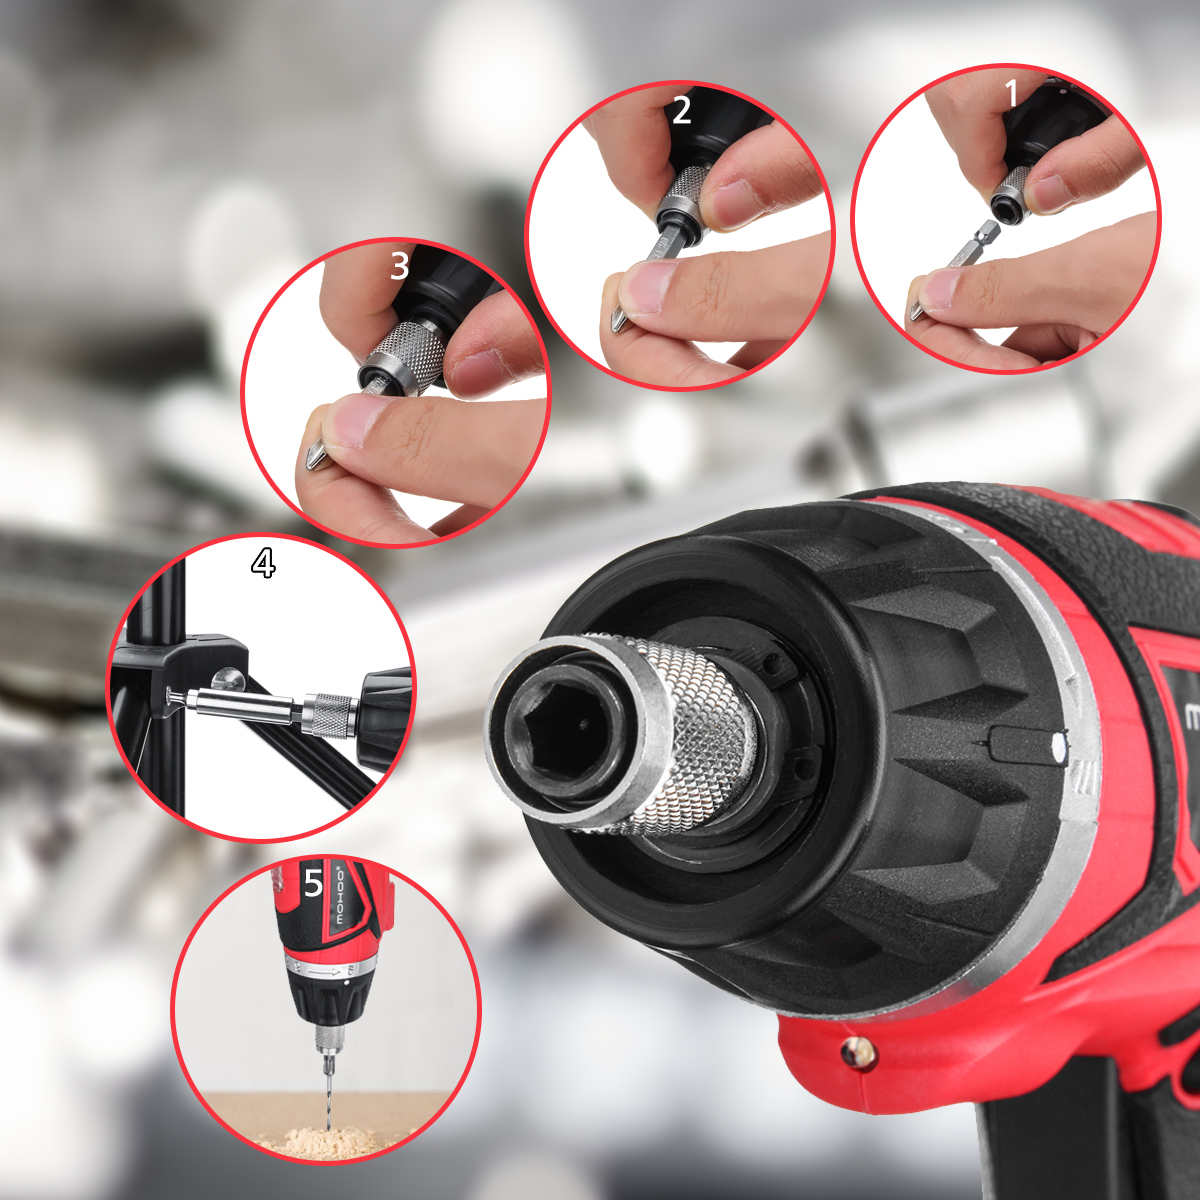 MIOHOO USB Electric Screwdriver Adjustable 4NM 3.6V Li-ion Power Screw Driver with 27 Accessories